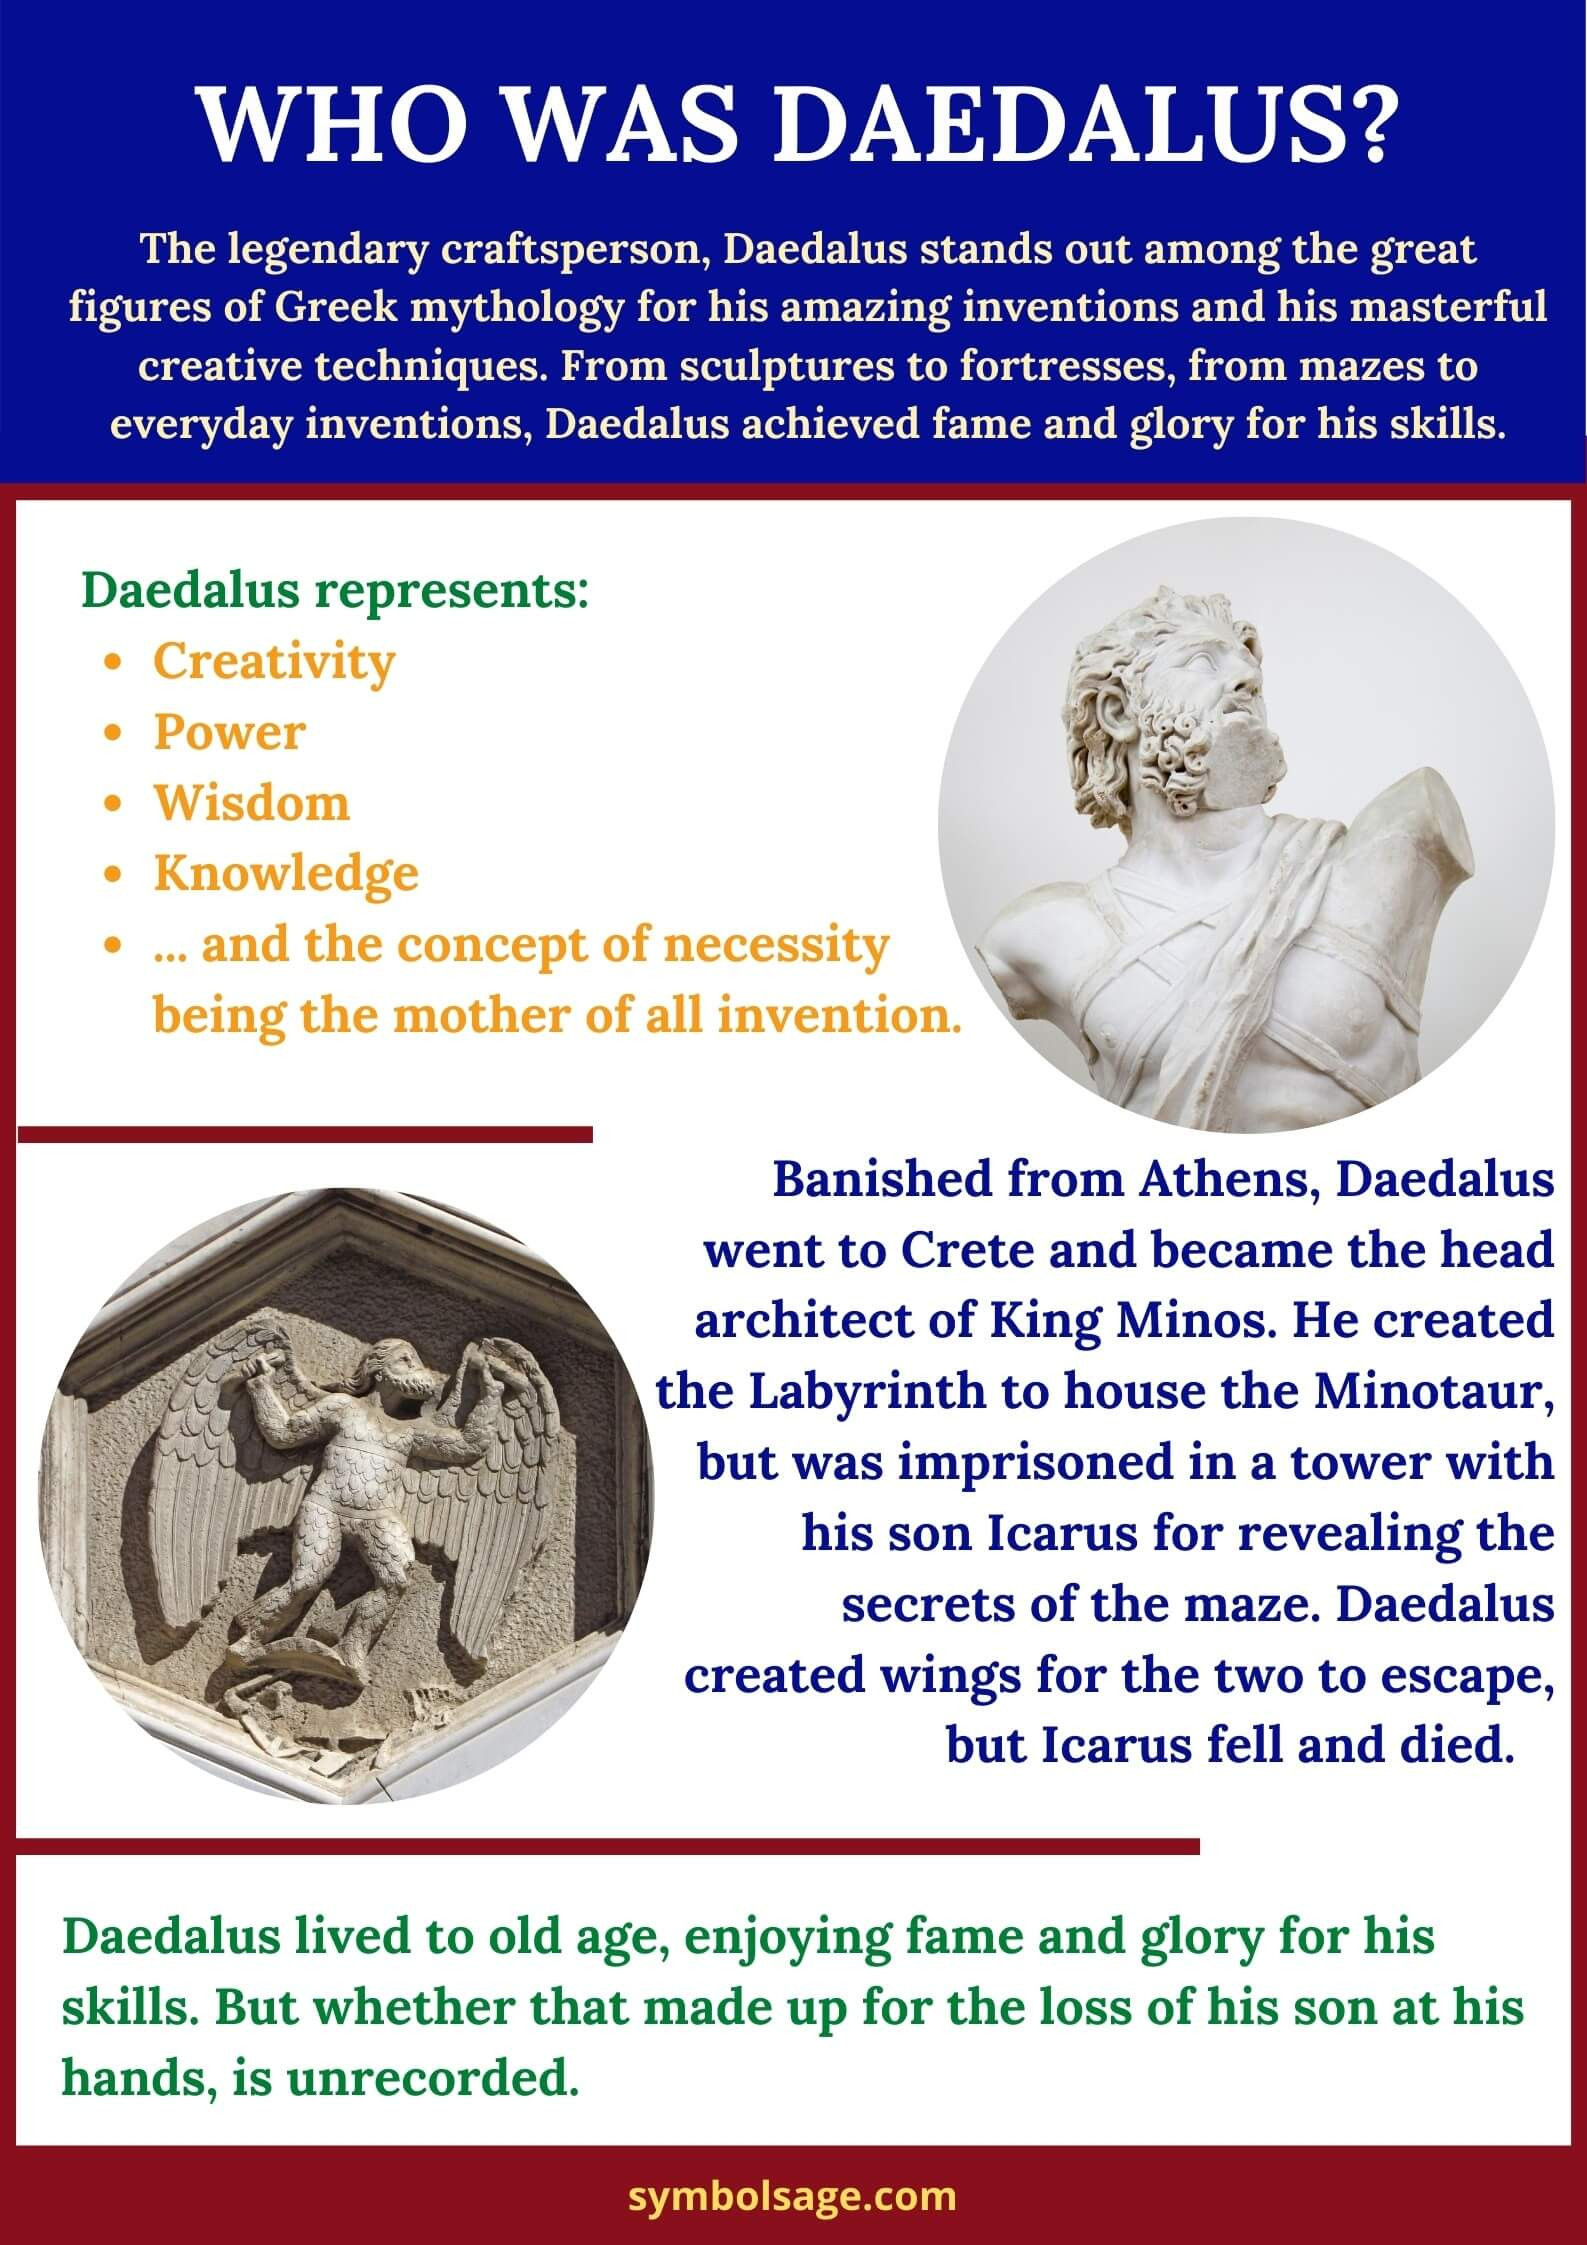 Who was Daedalus